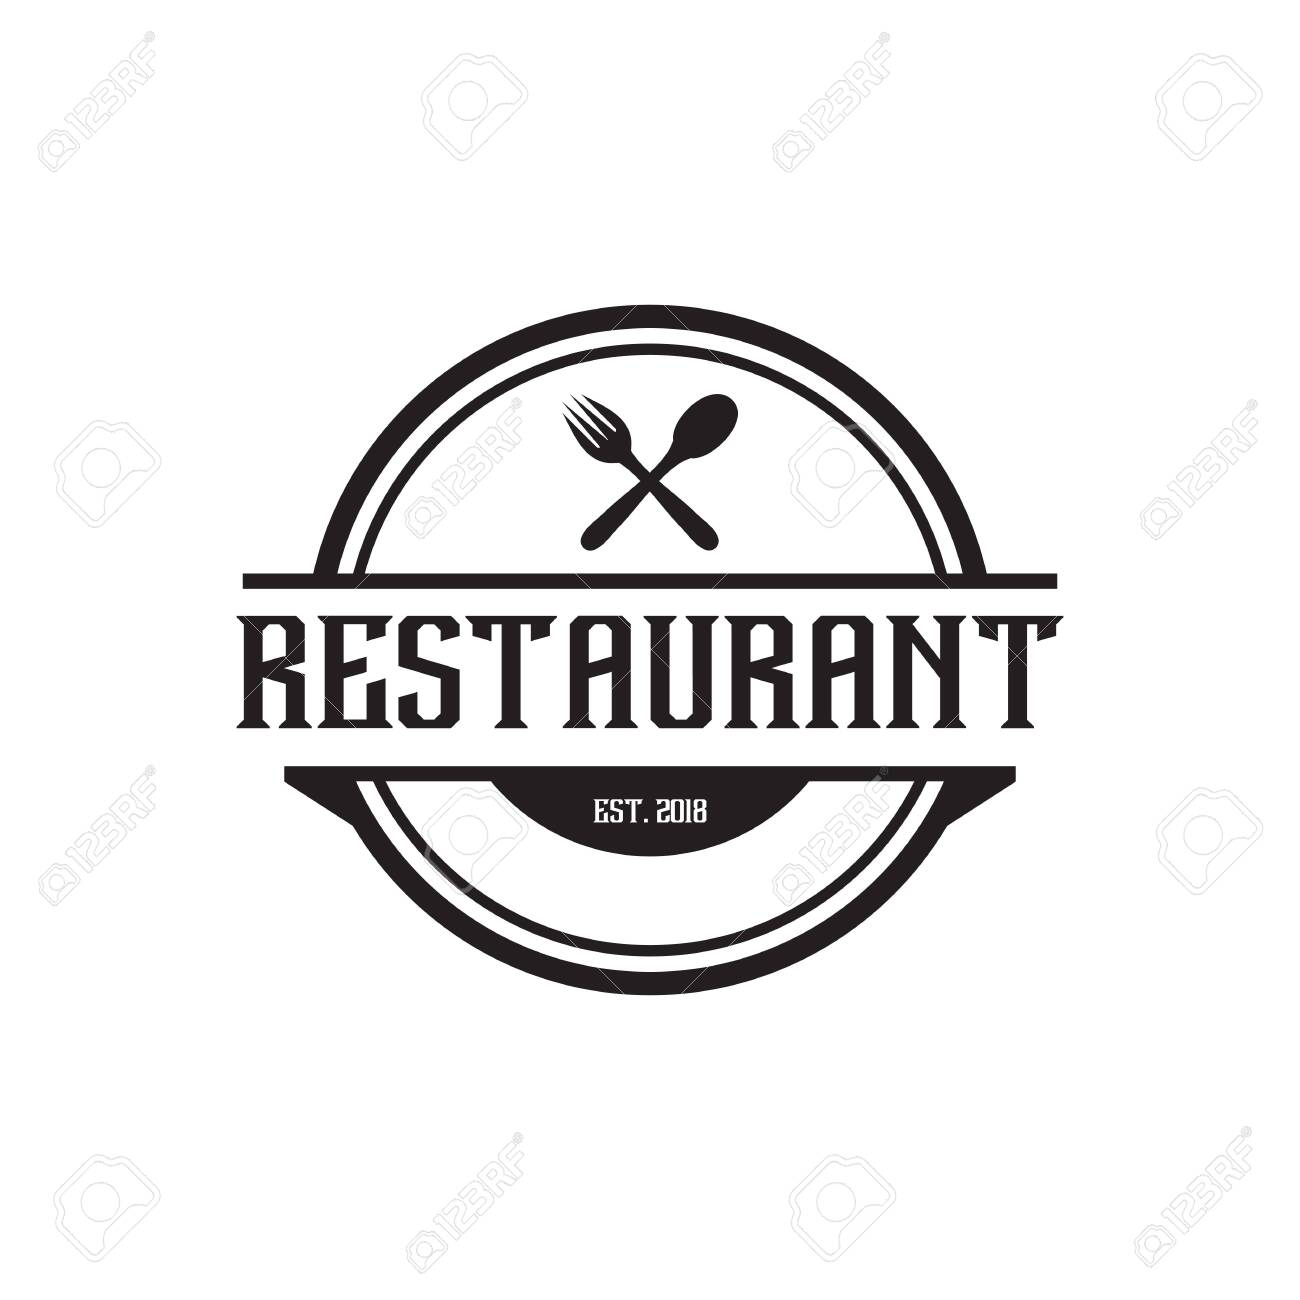 Restaurant Logo Design Inspiration Concept Vector Template Royalty Free Cliparts Vectors And Stock Illustration Image 129604362